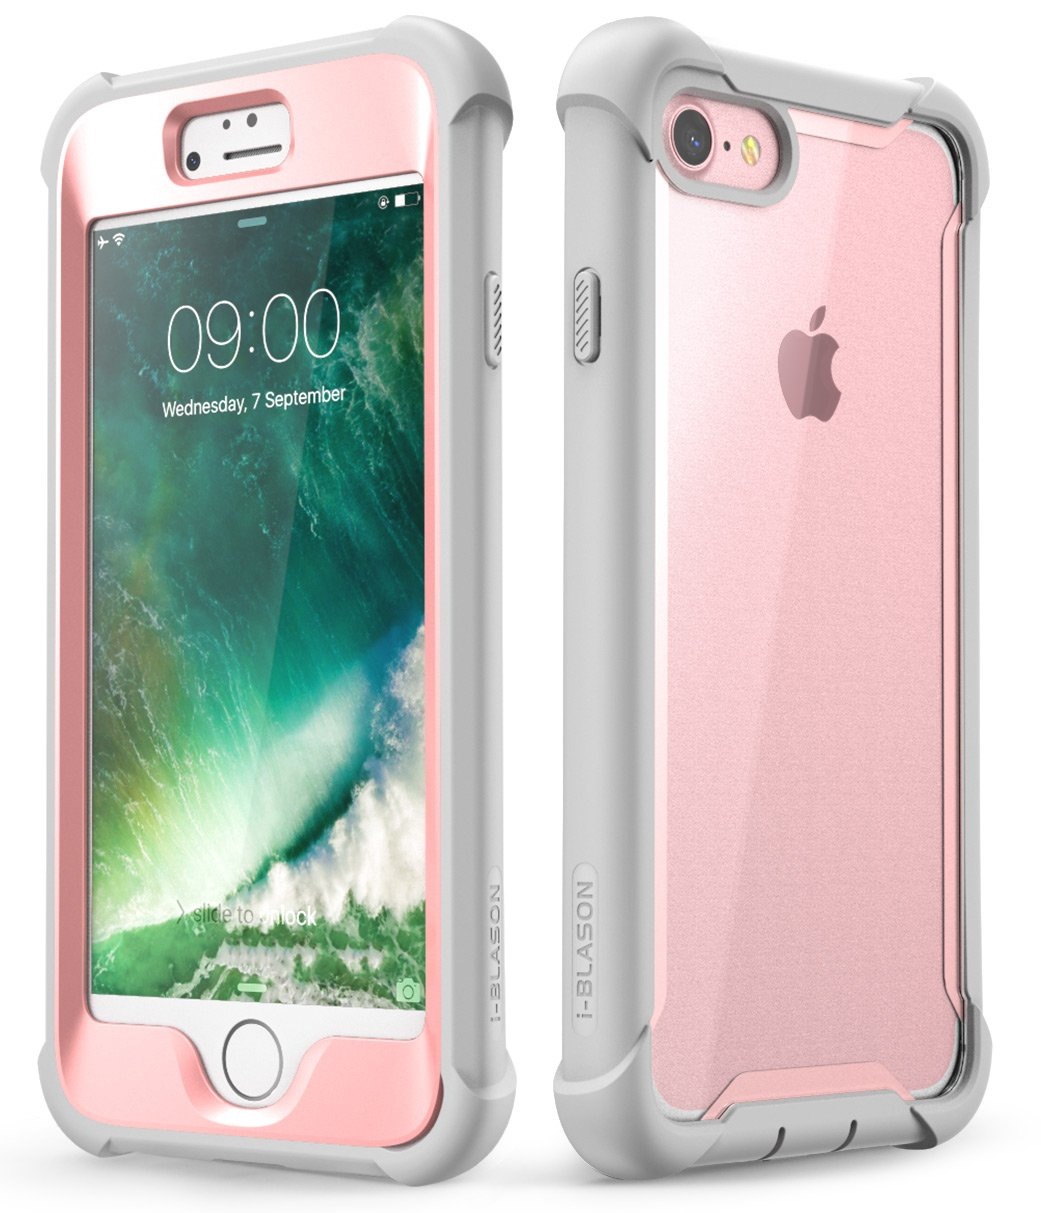 iPhone 8 Case, iPhone 7 Case, i-Blason [Ares] Full-Body Rugged Clear Bumper Case with Built-in Screen Protector for Apple iPhone 8 / Apple iPhone 7 (Pink)